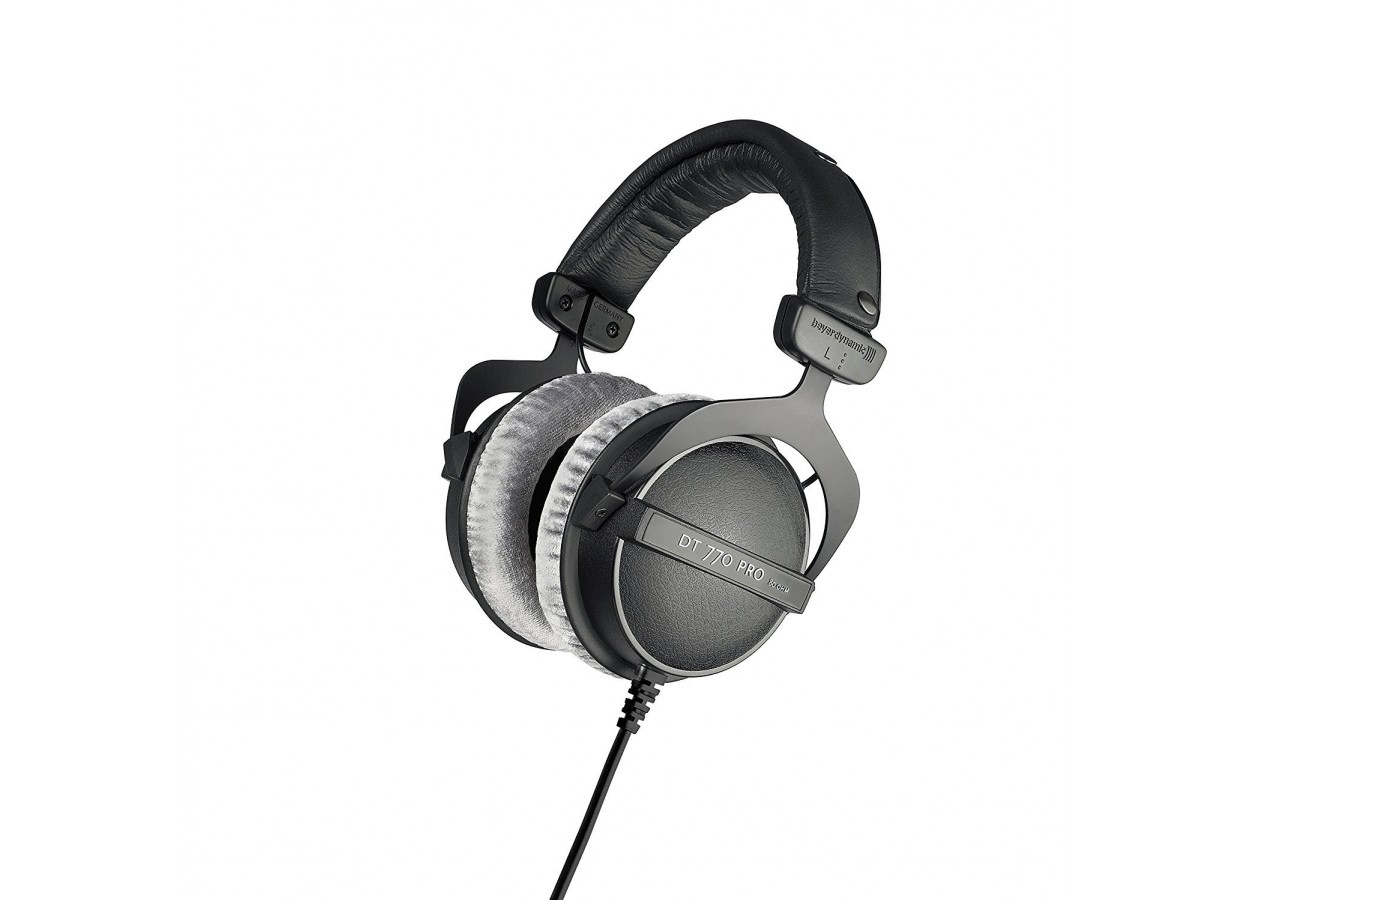 The headphones are made of high-quality materials.